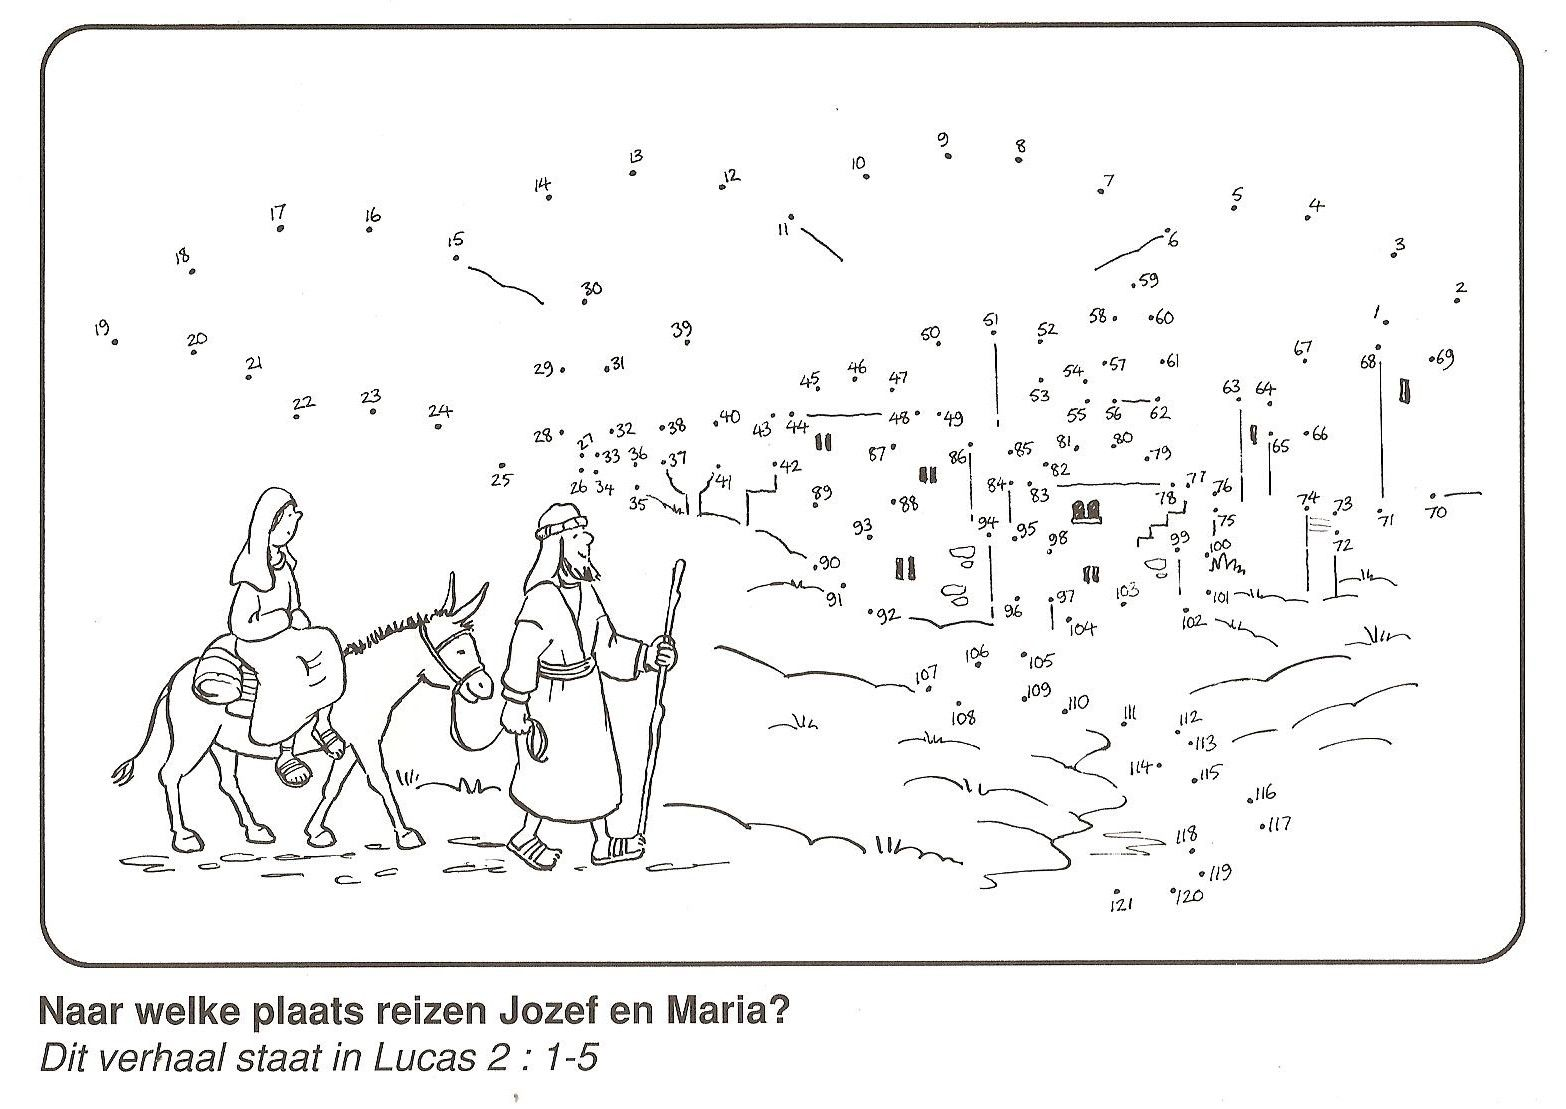 Joseph And Mary To Travel From Nazareth To Bethlehem From